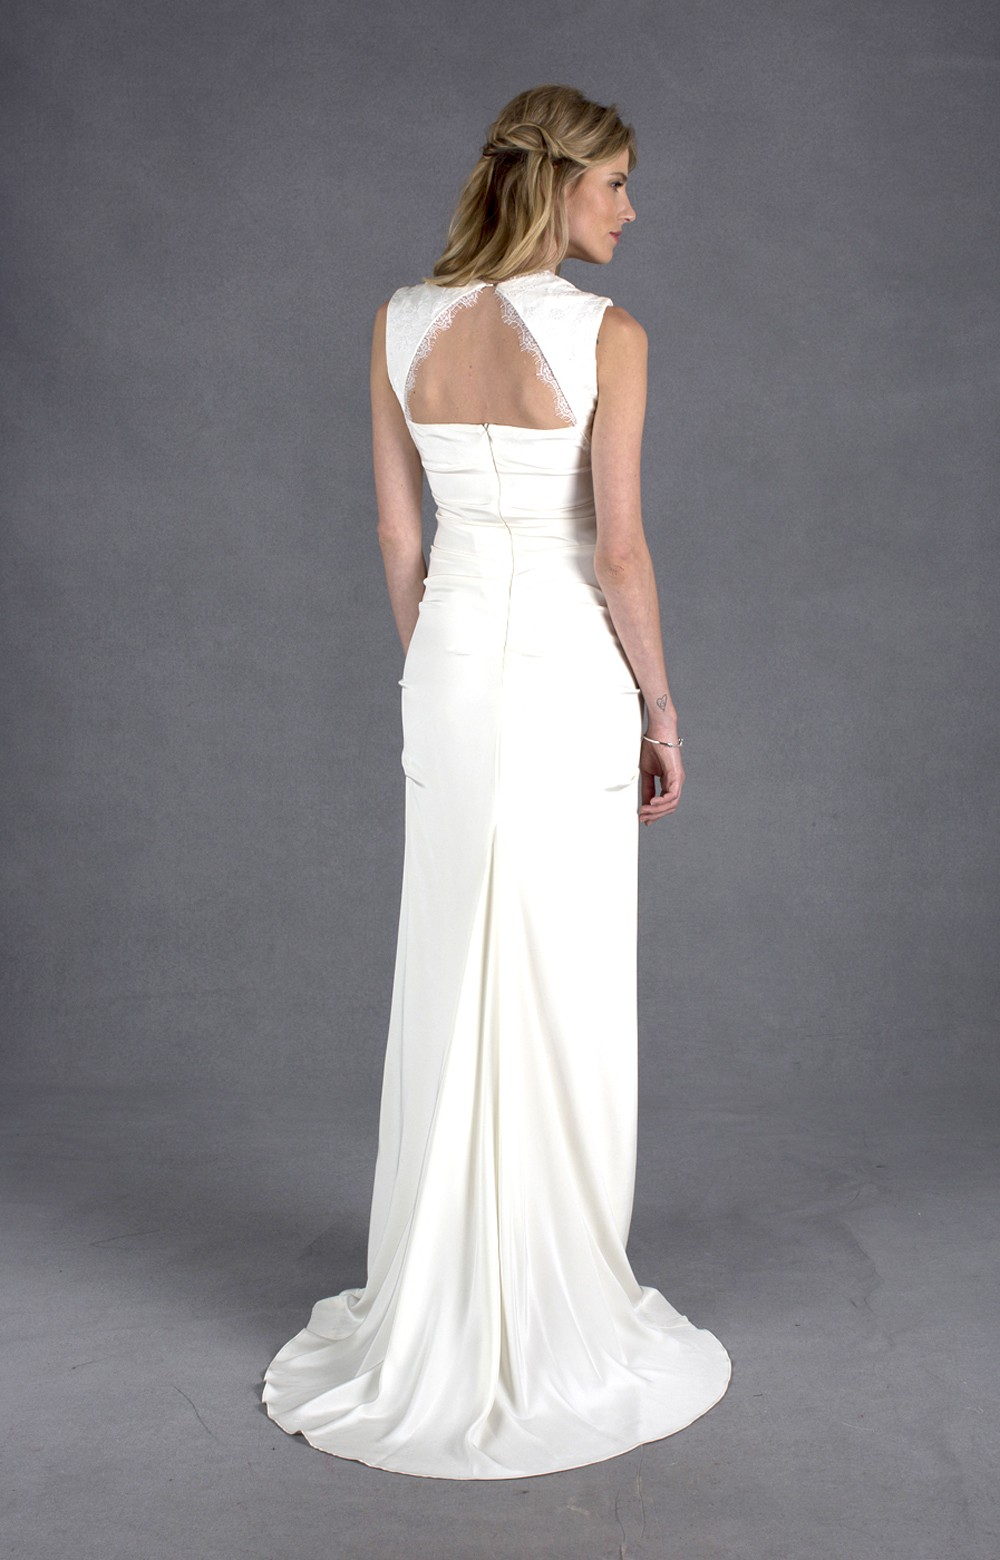 marie gown nicole miller wedding dresses Nicole Miller ivory Marie Gown BHLDN